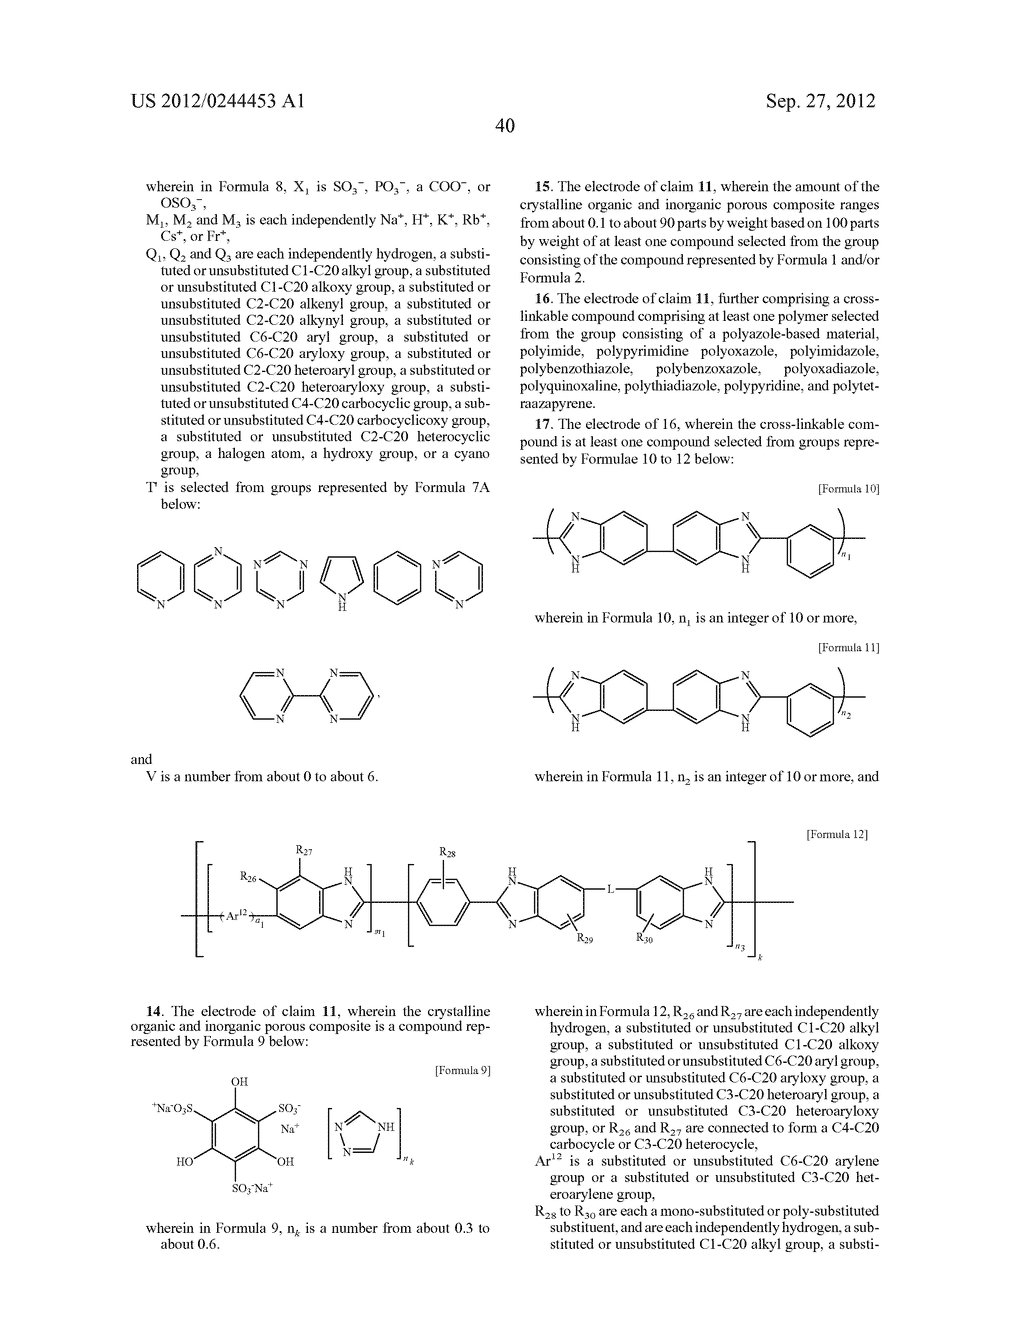 ELECTROLYTIC MEMBRANE FOR FUEL CELL, ELECTRODE FOR FUEL CELL, AND FUEL     CELL INCLUDING THE ELECTROLYTIC MEMBRANE AND/OR THE ELECTRODE - diagram, schematic, and image 46